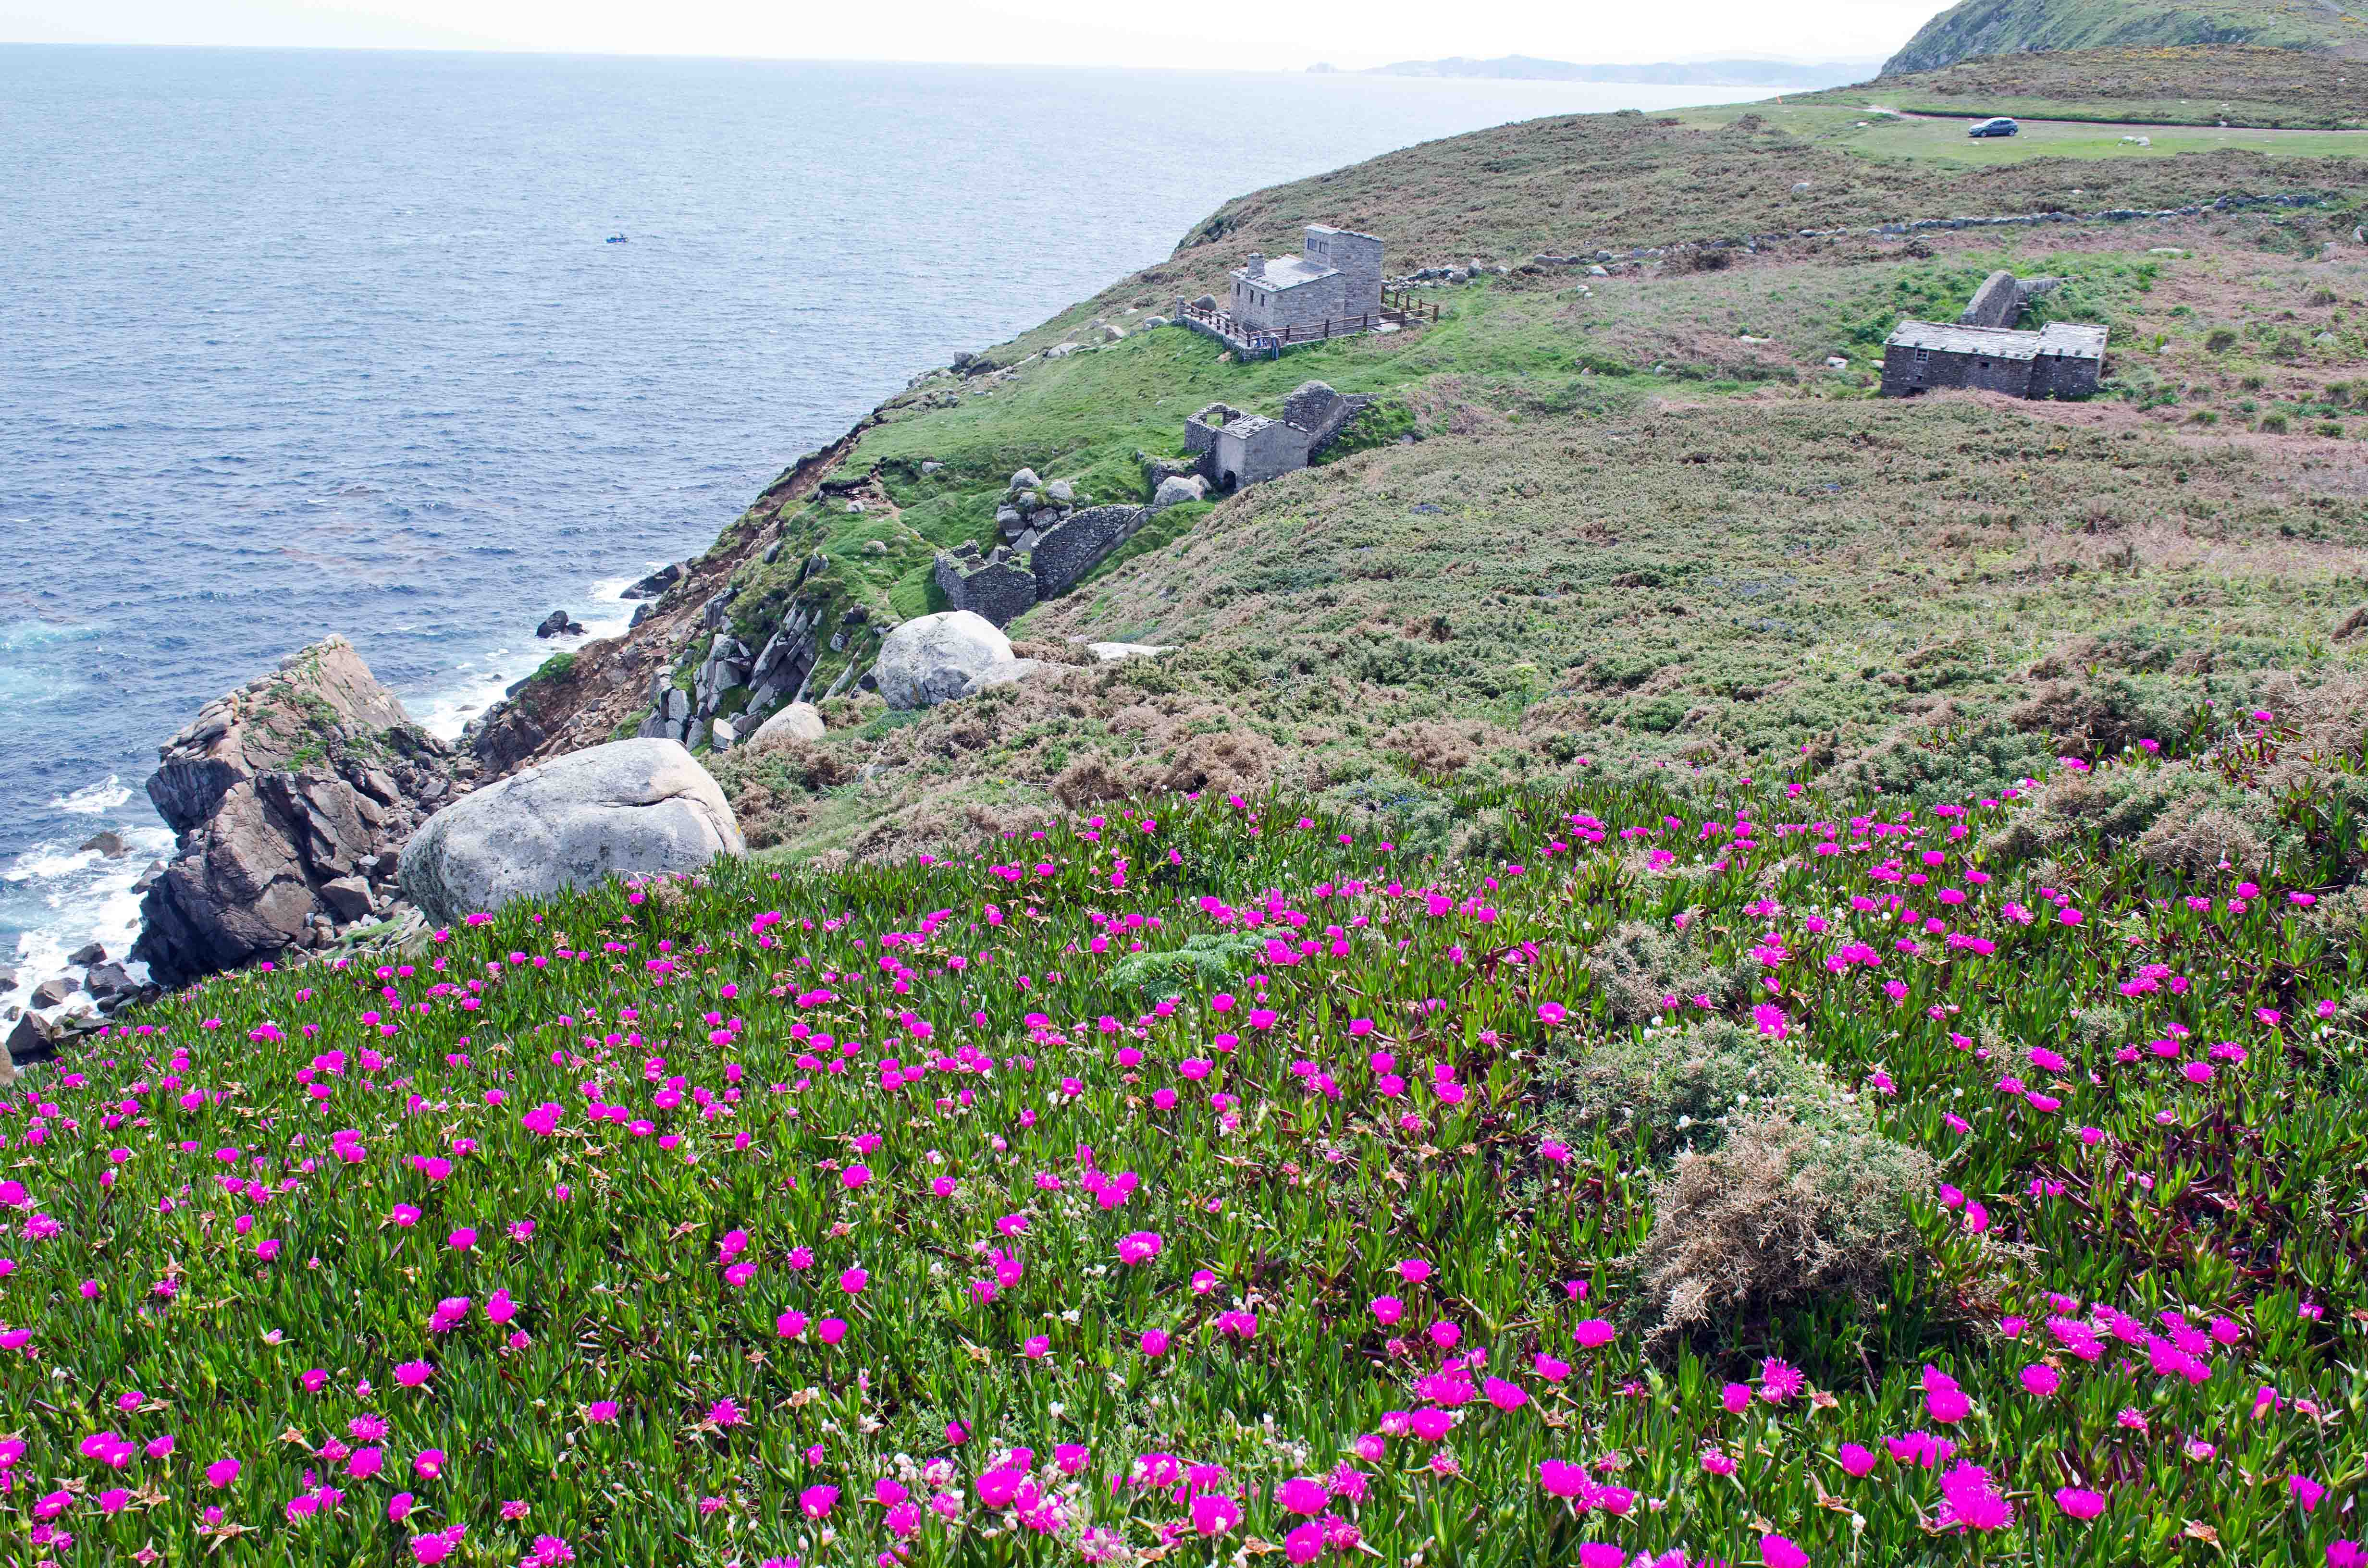 Seaside flowers: the good, the bad and the invasive! – Ray Cannons natur...